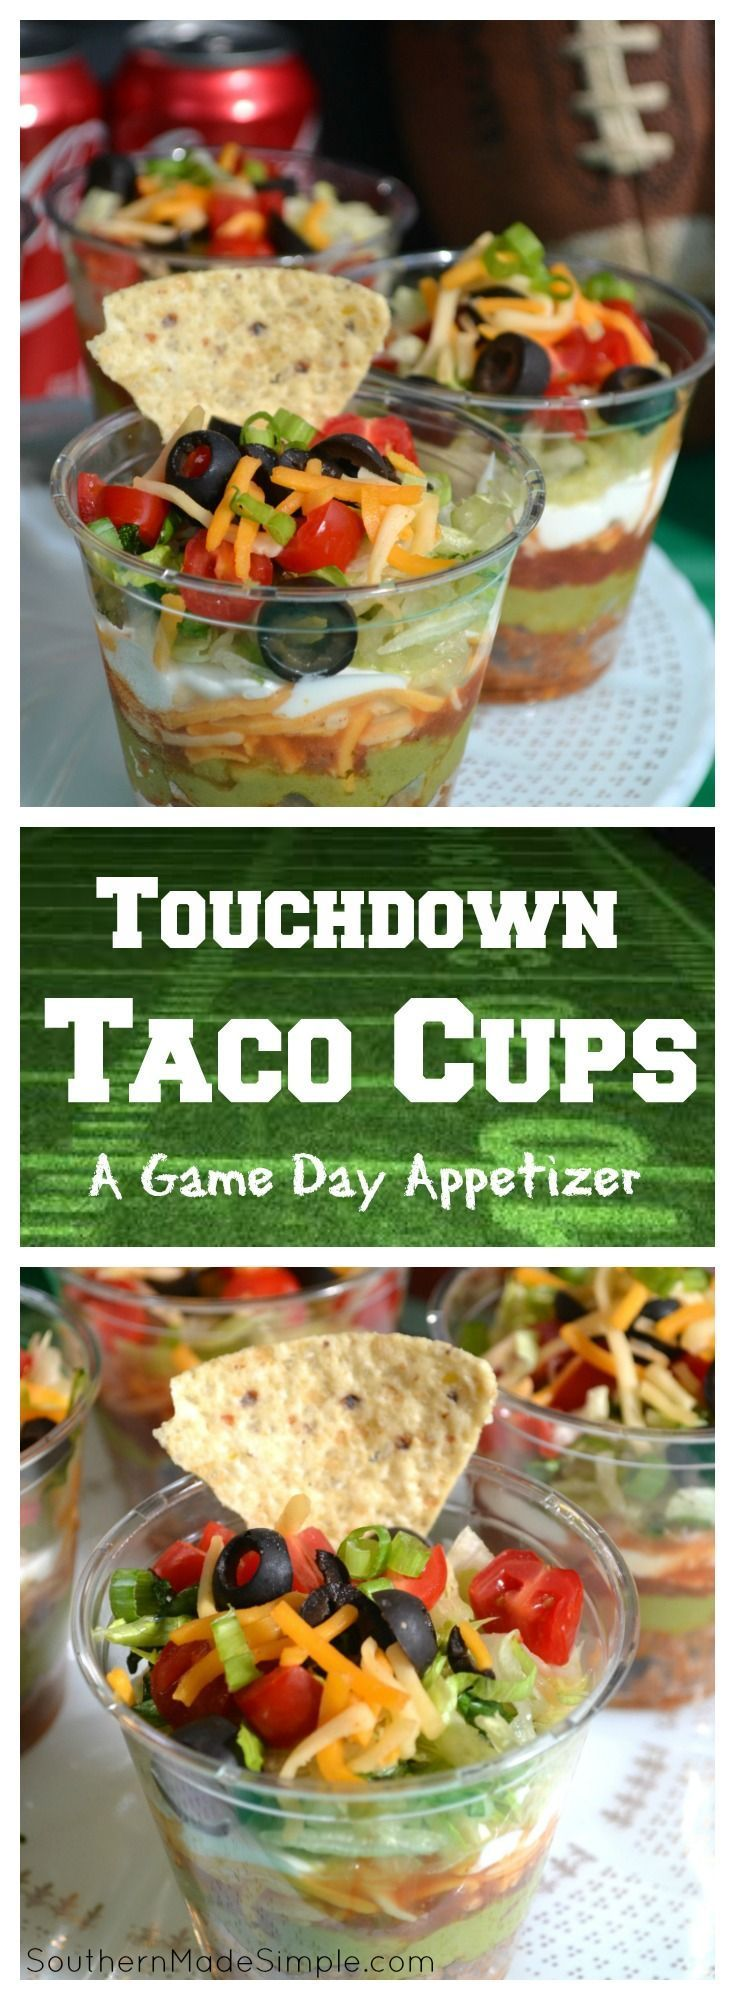 "Looking for a great game day snack? Look no further! These delicious ""touchdown"" taco cups will have you cheering and rooting for more! No more hovering over the dip bowl either! You can take you own taco cups wherever the party's at!"